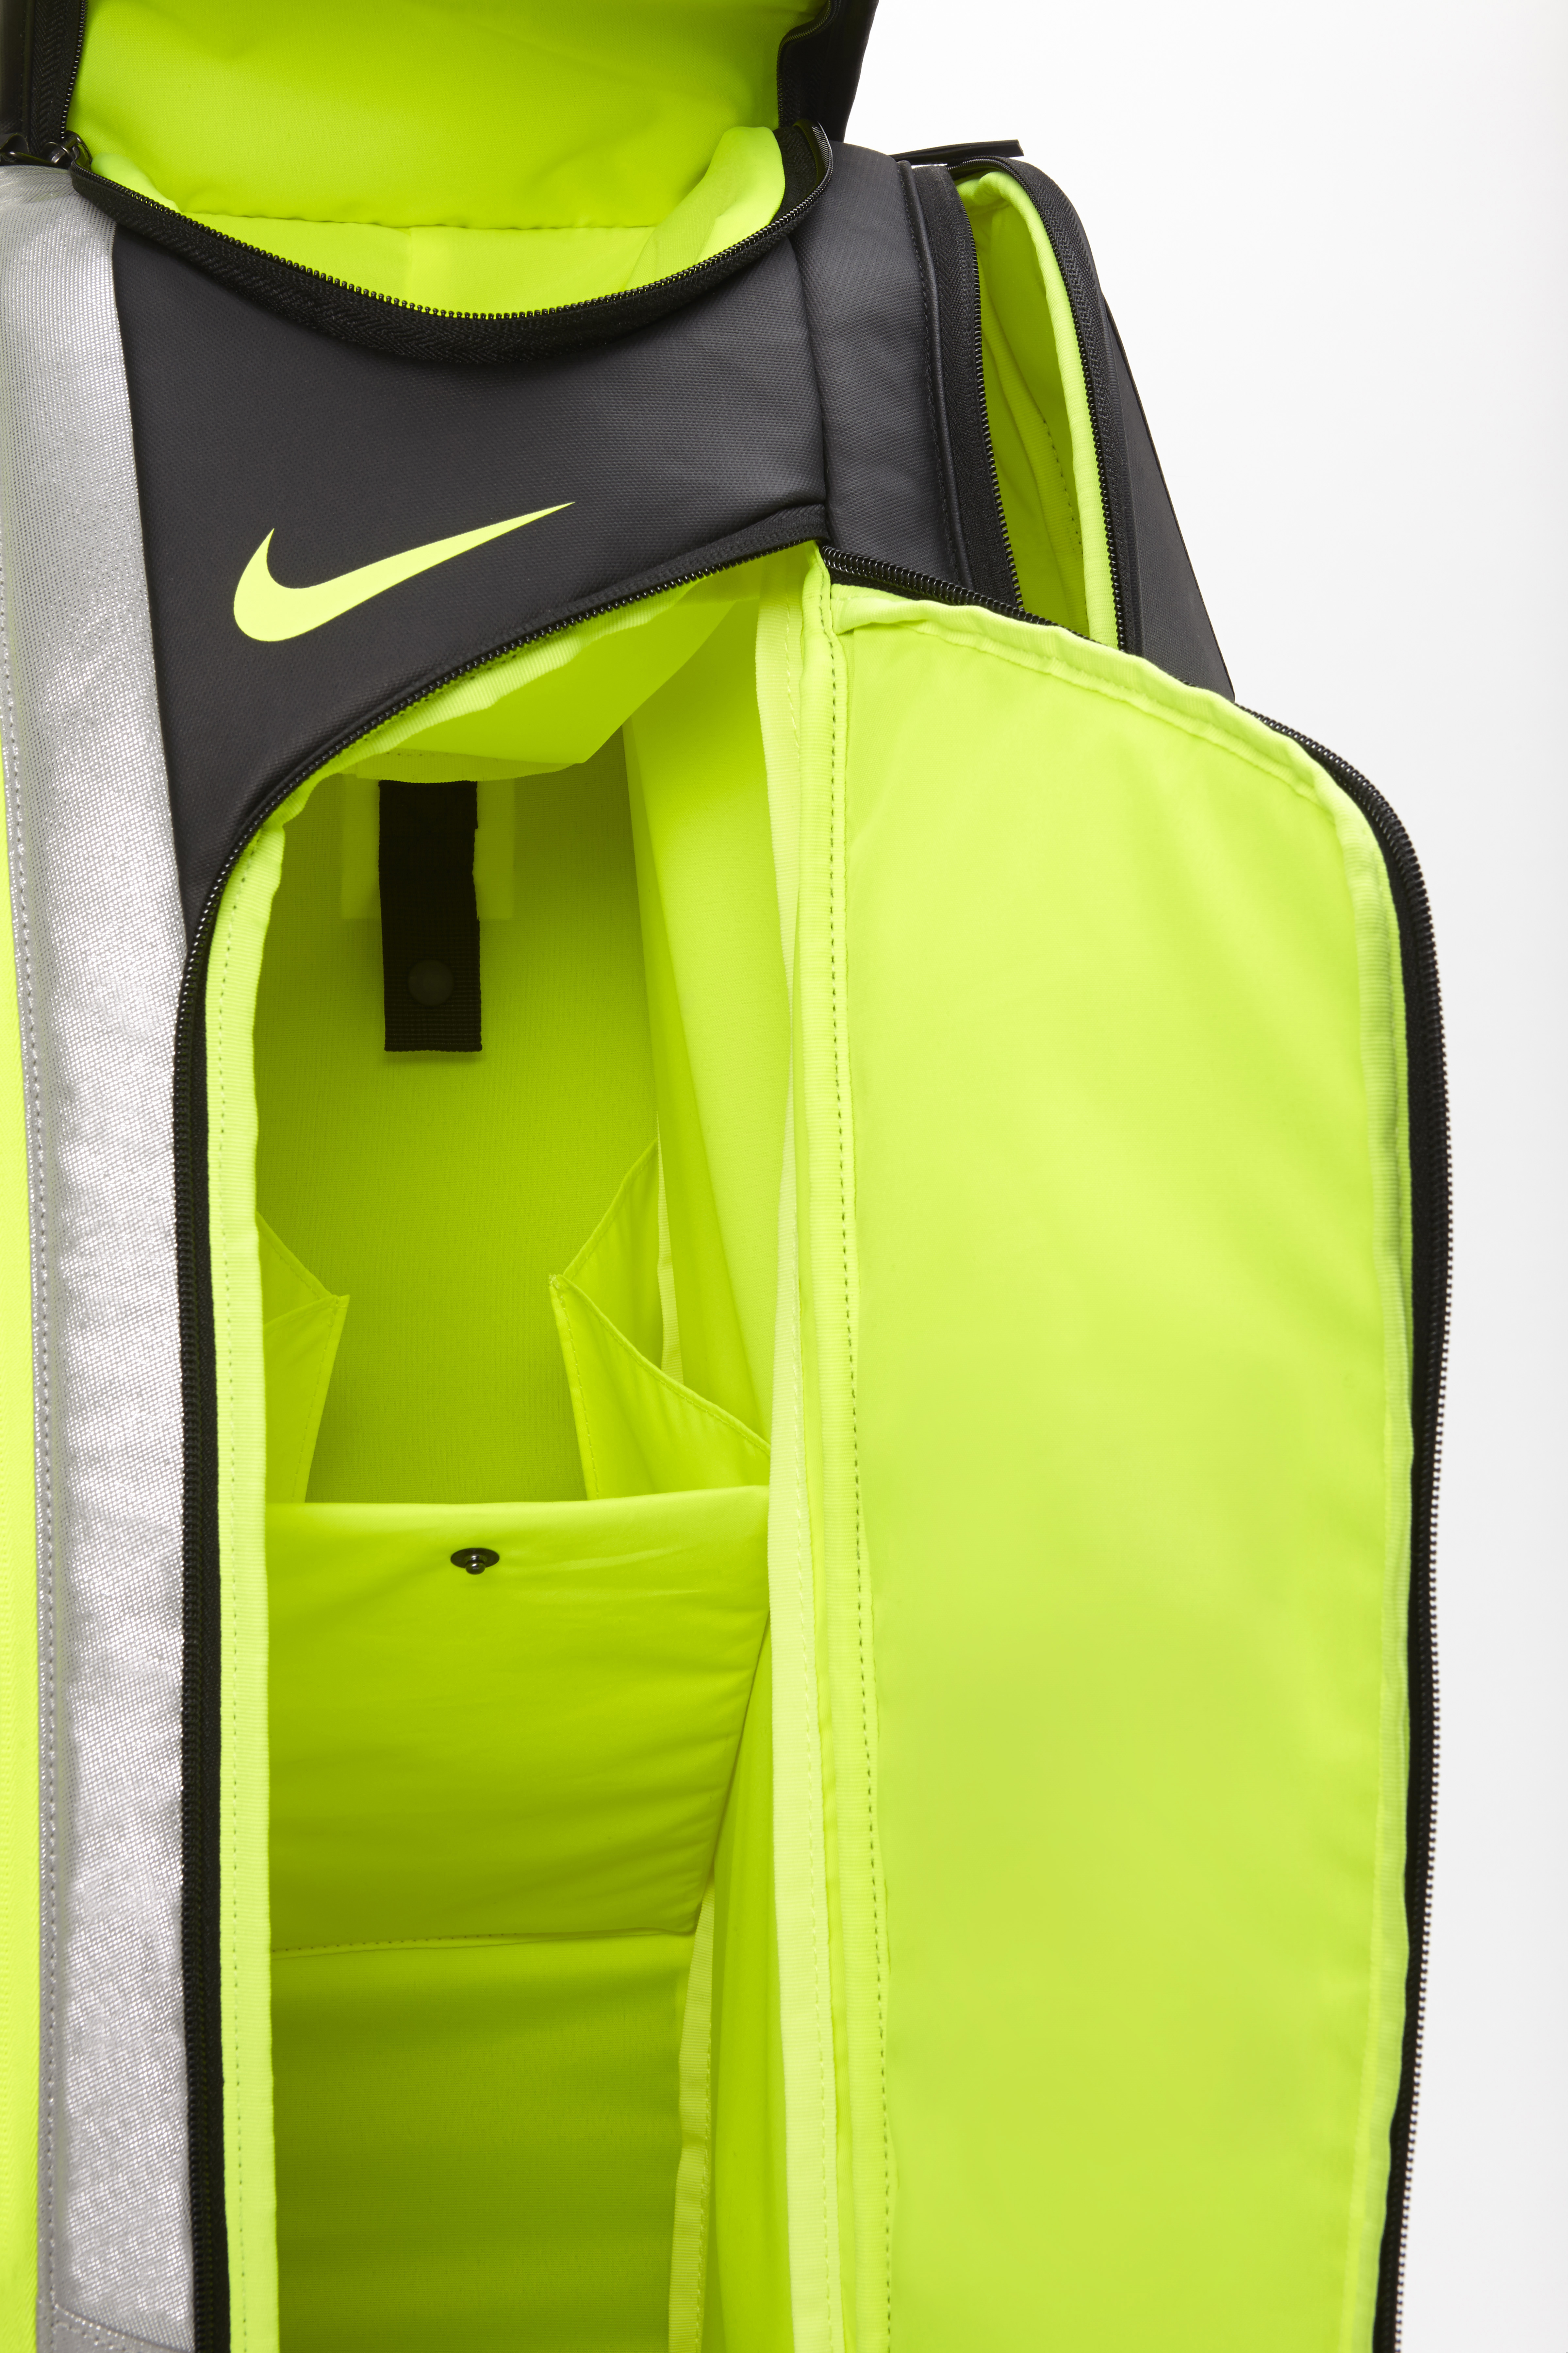 Nike Tennis Unveils the Court Tech 1 Bag - Nike News